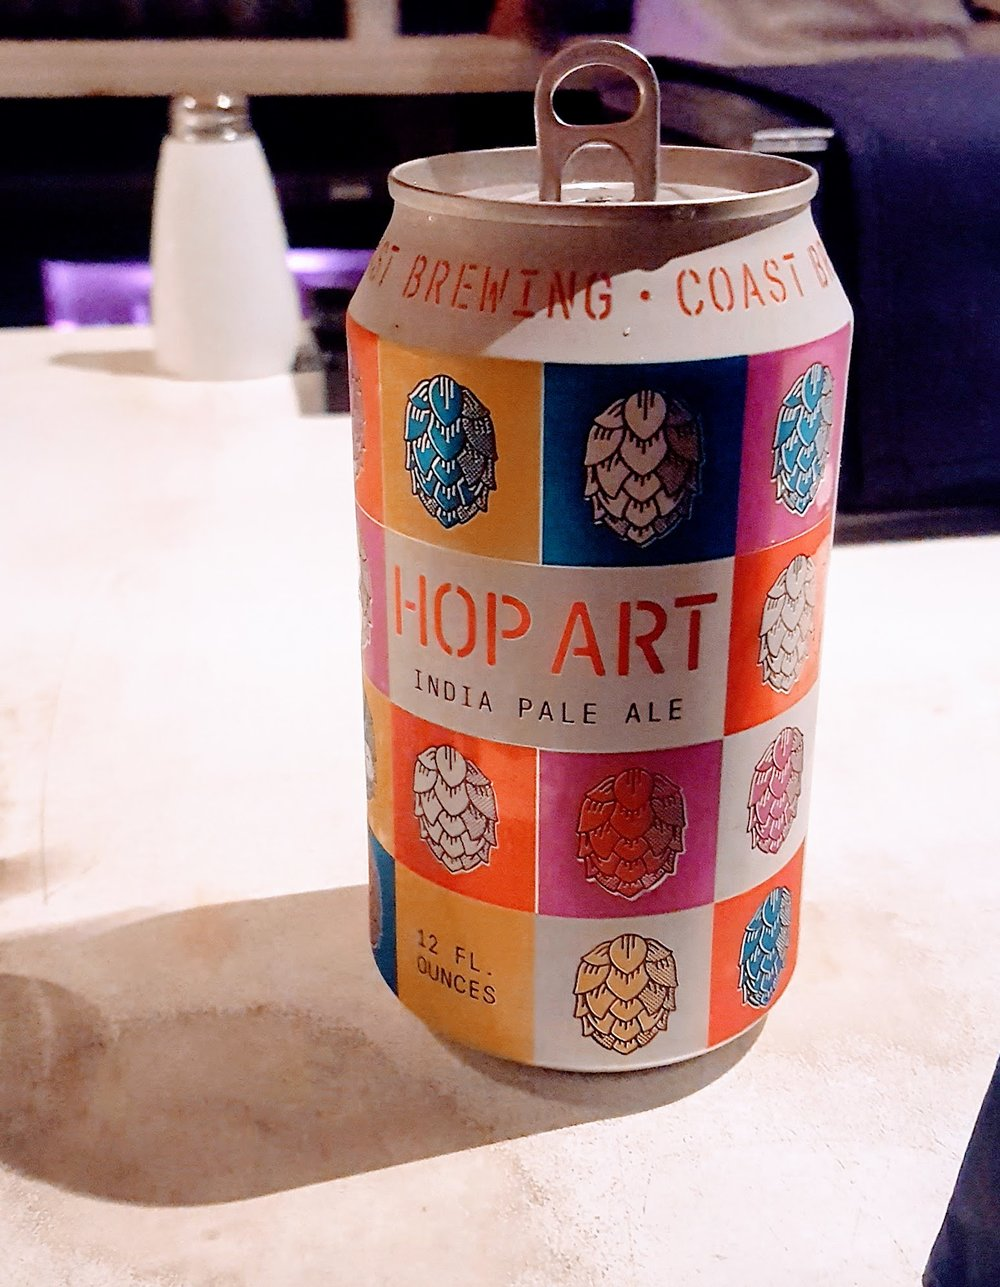 - Hop Art IPA          Coast Brewing Co.   The first beer I had after our move to Charleston. Solid IPA with funky art.*Memory award* *2nd funkiest can decor*